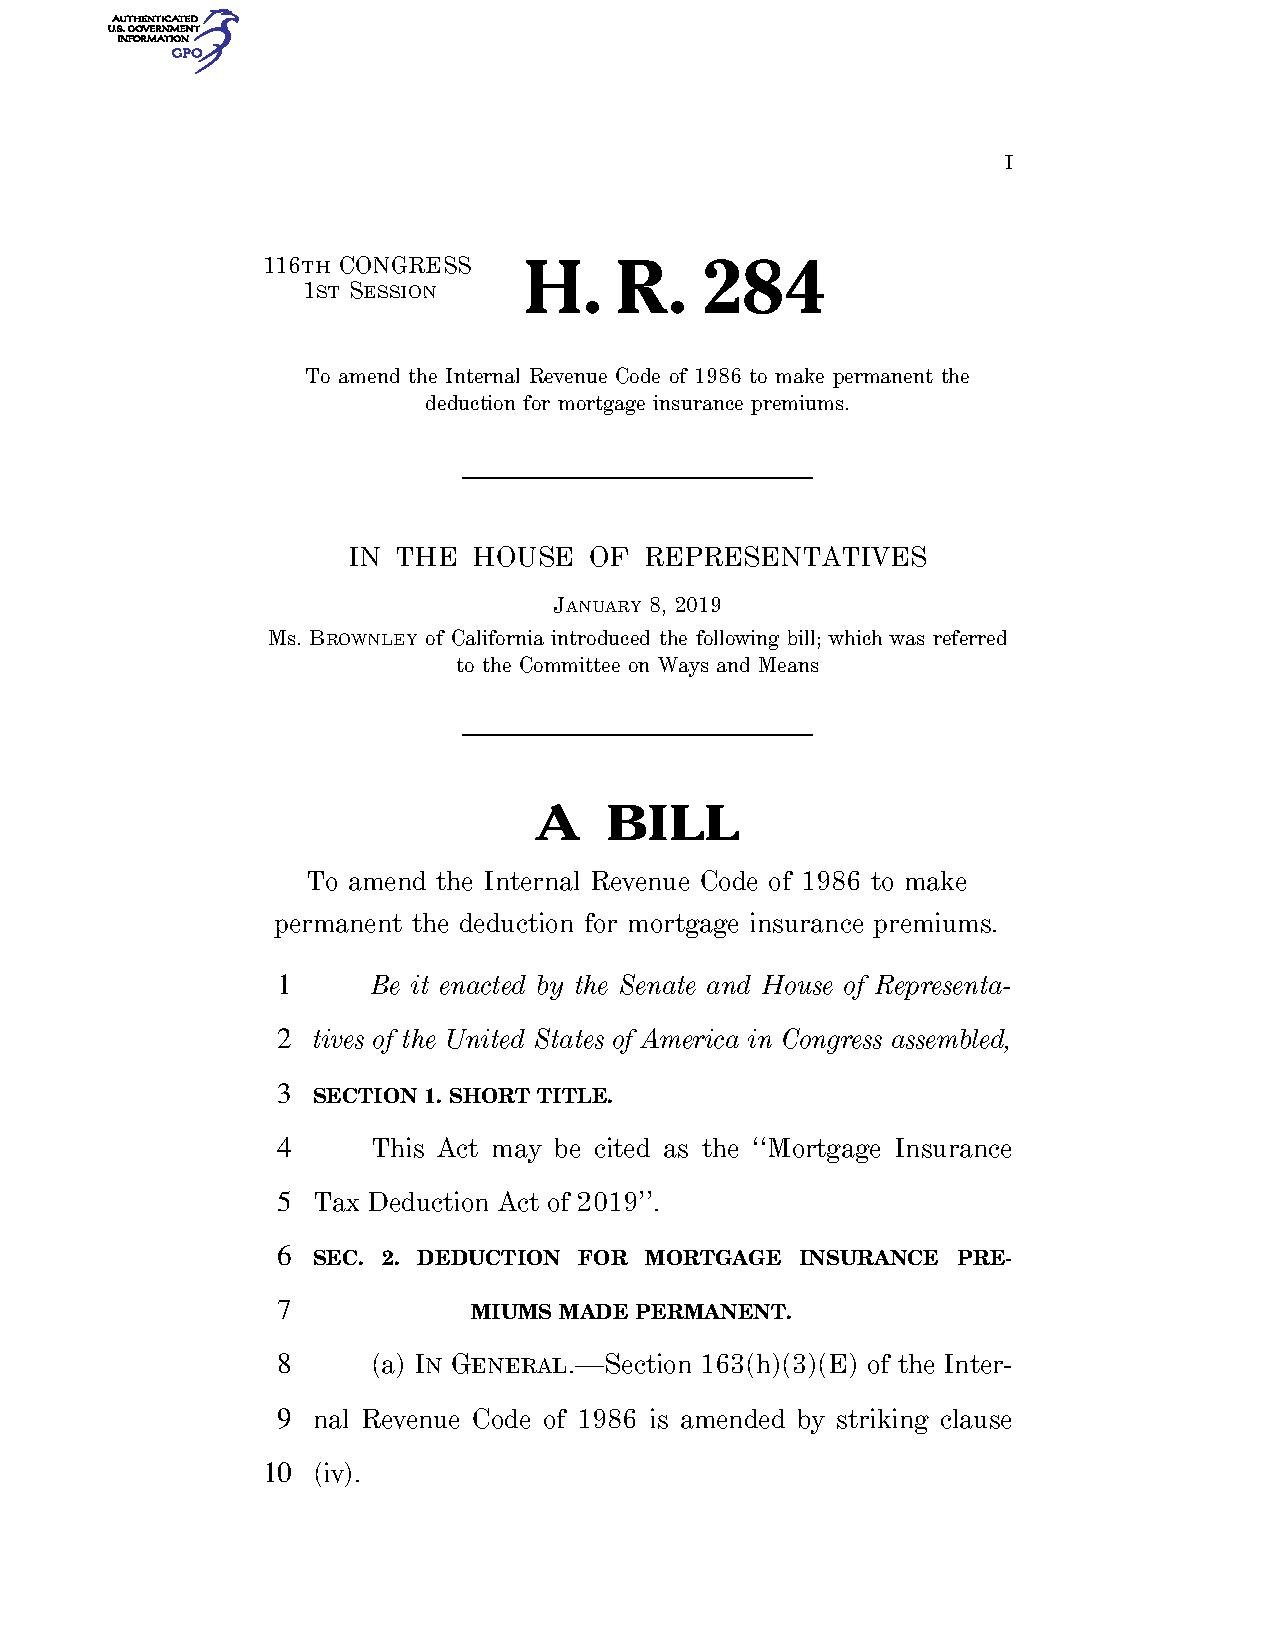 File:116th United States Congress H. R. 0000284 (1st session) - Mortgage  Insurance Tax Deduction Act of 2019.pdf - Wikimedia Commons